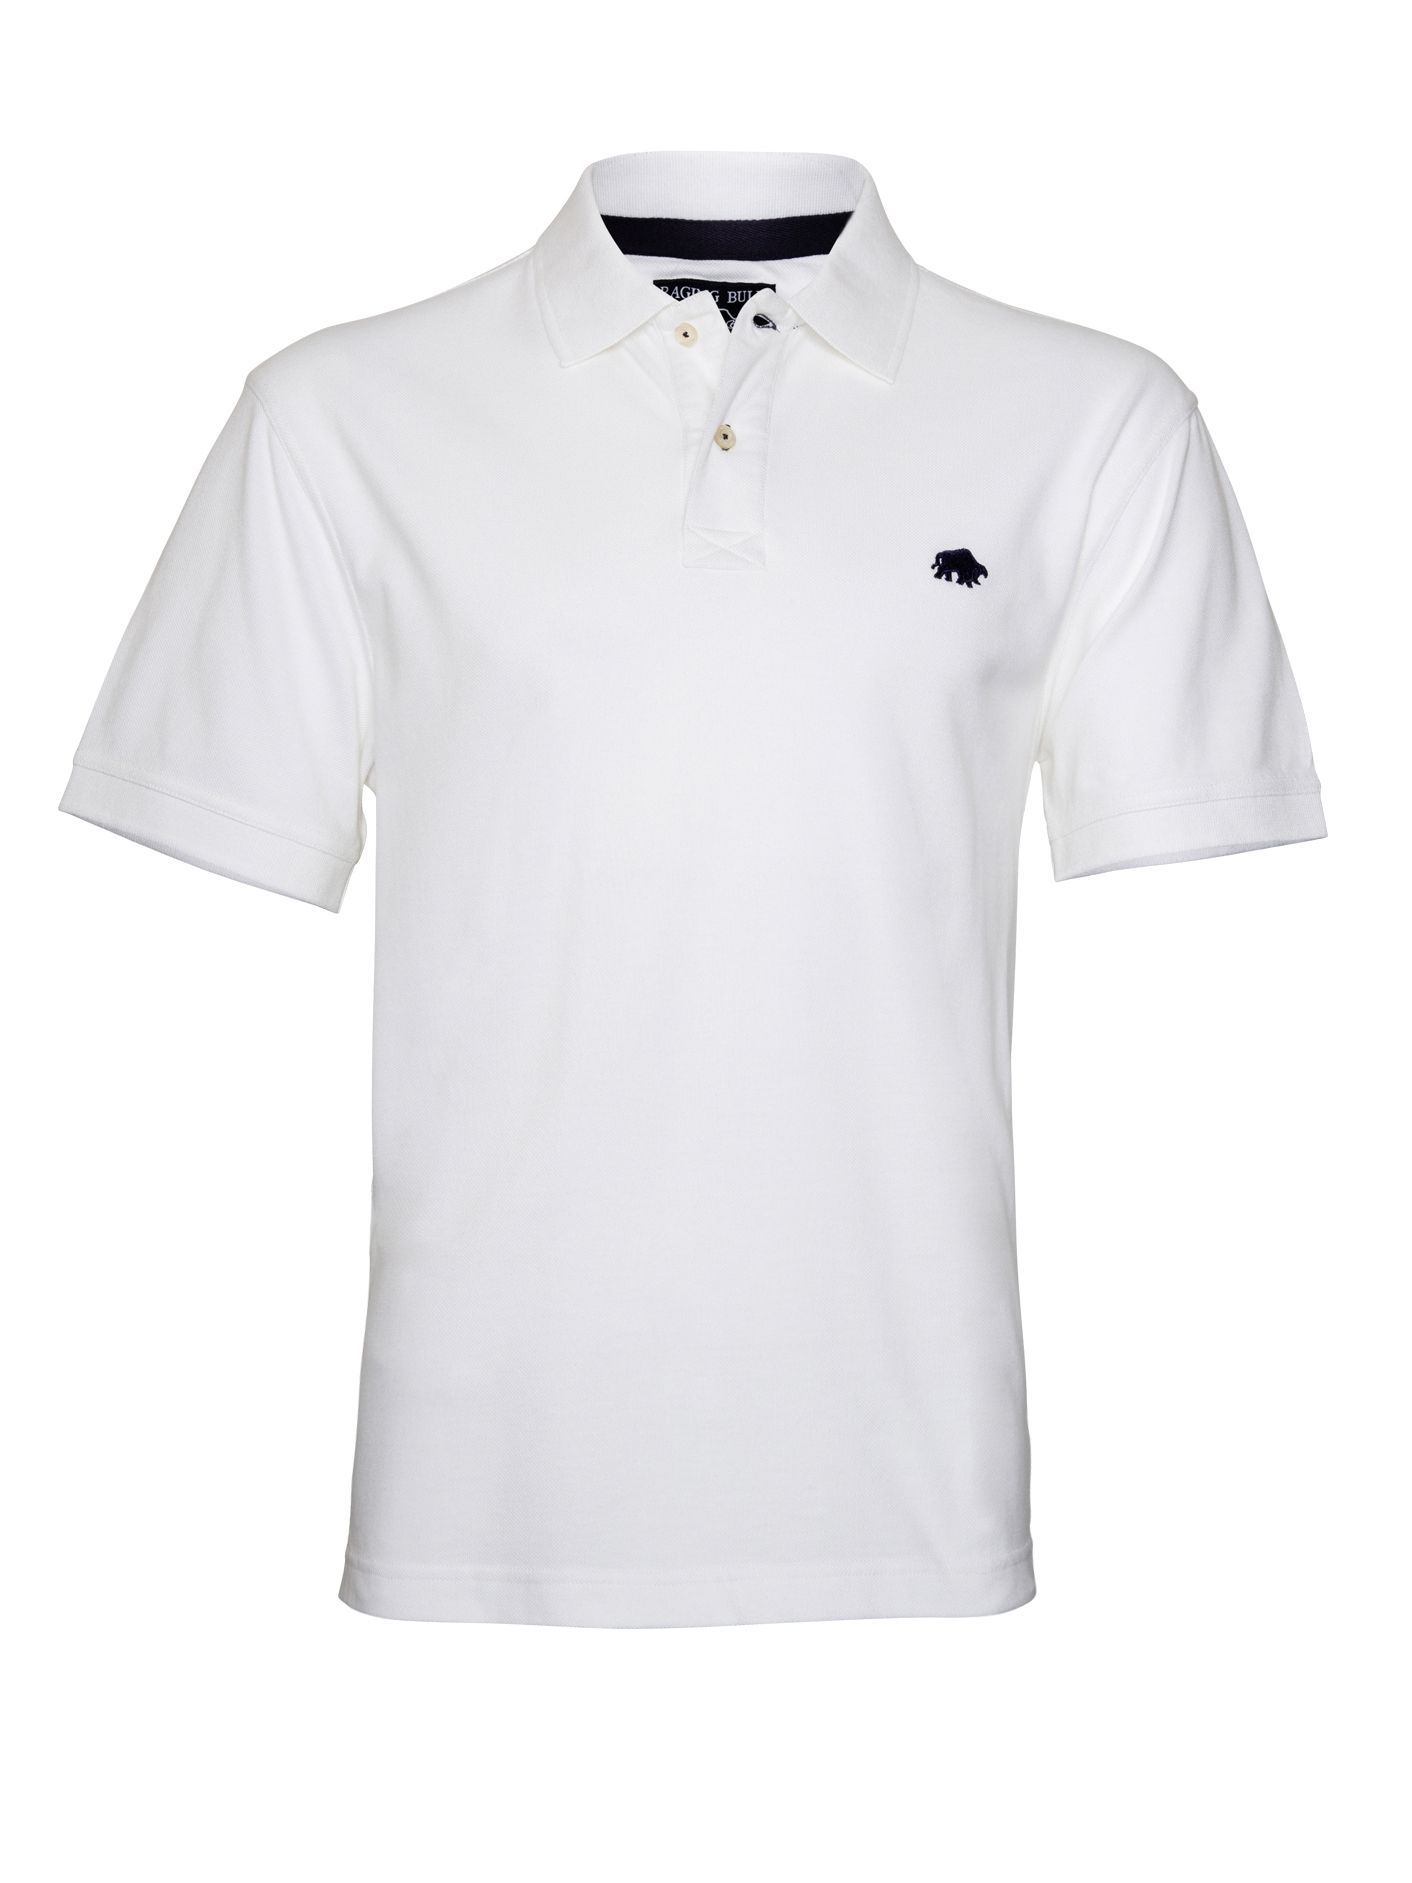 Men's Raging Bull Big & Tall New Signature Polo Shirt, White